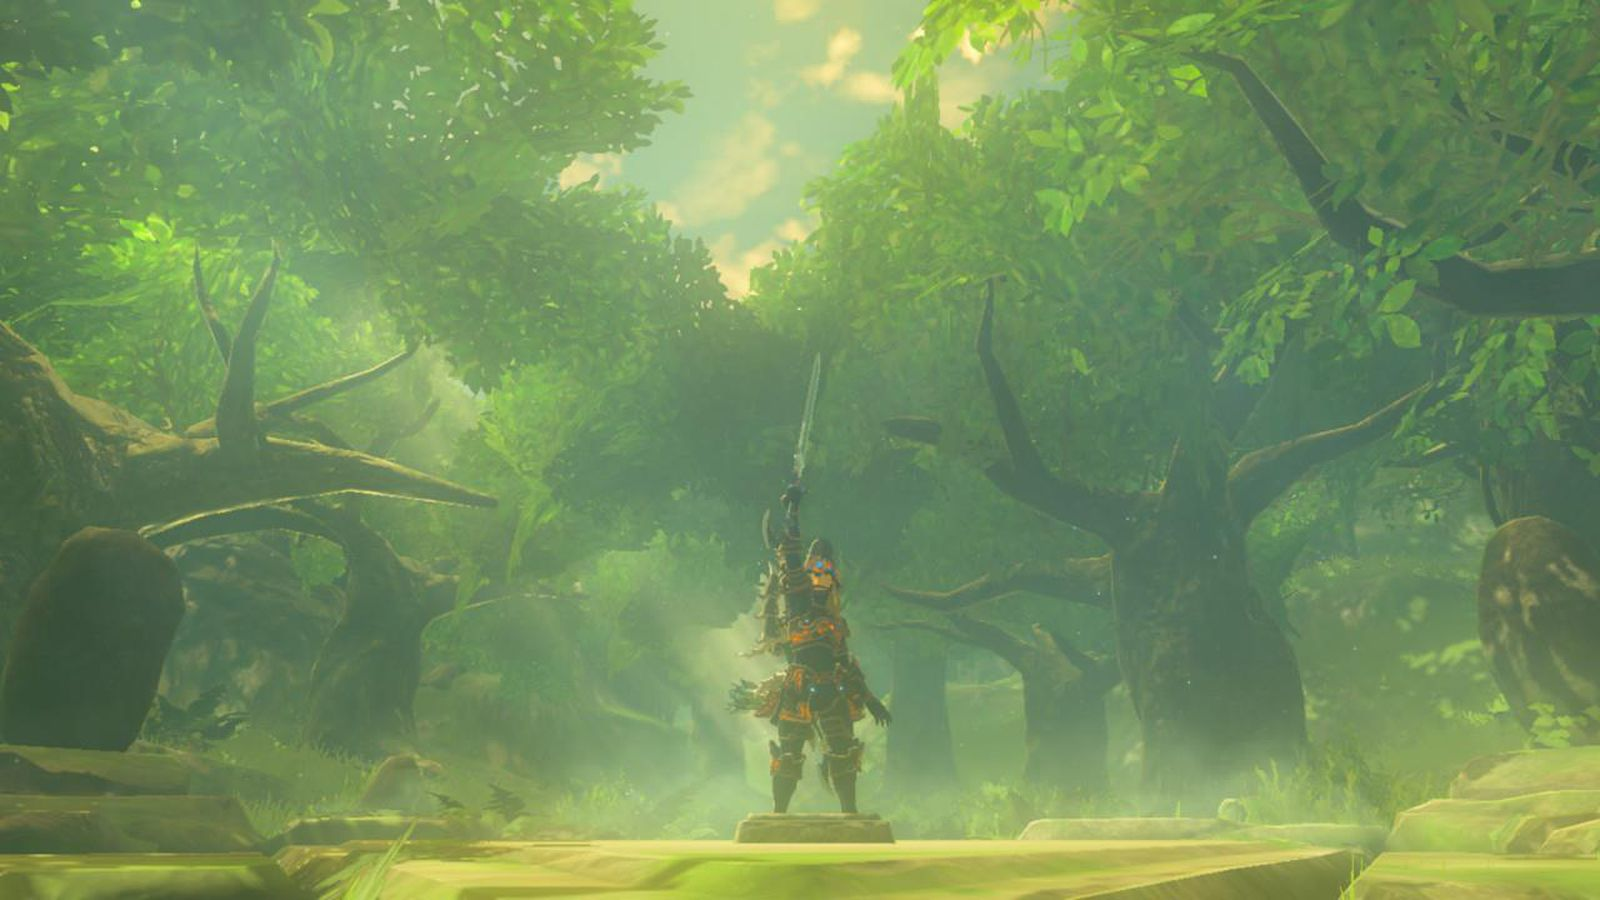 Gaming Wallpapers Hd Zelda Breath Of The Wild Is Playable At 4k On The Pc